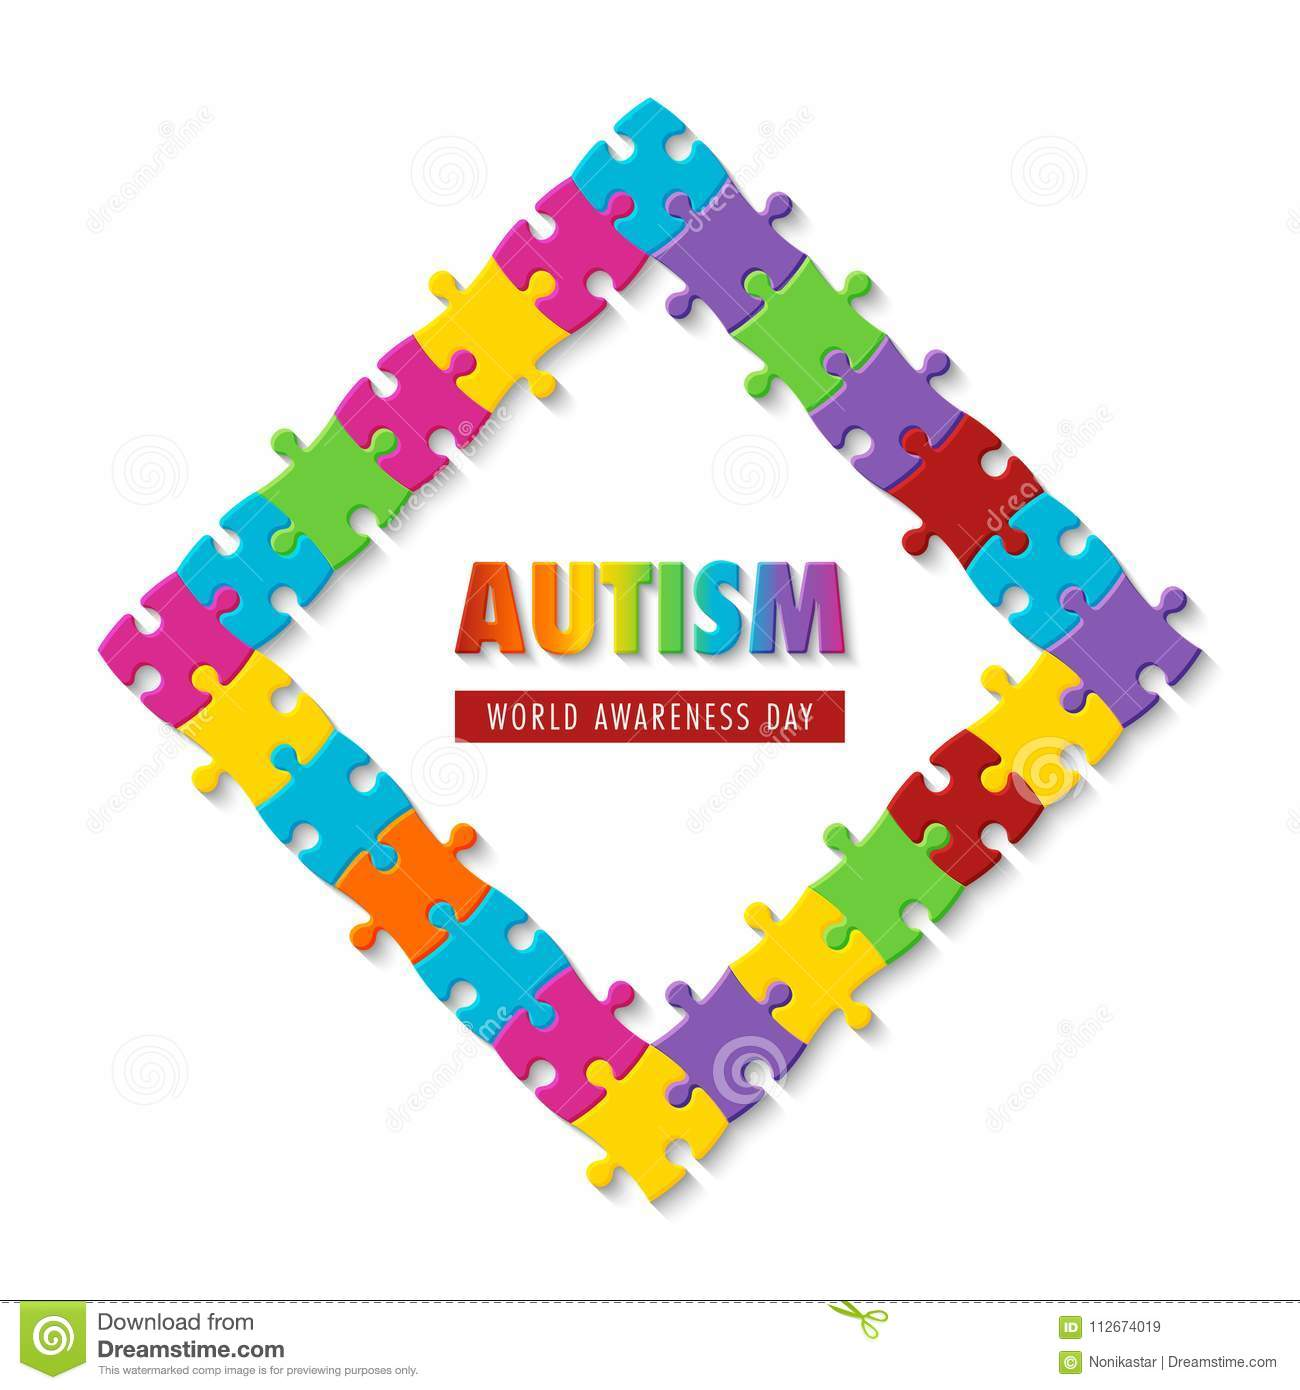 Autism Awareness Day Stock Vector Illustration Of Disorder 112674019